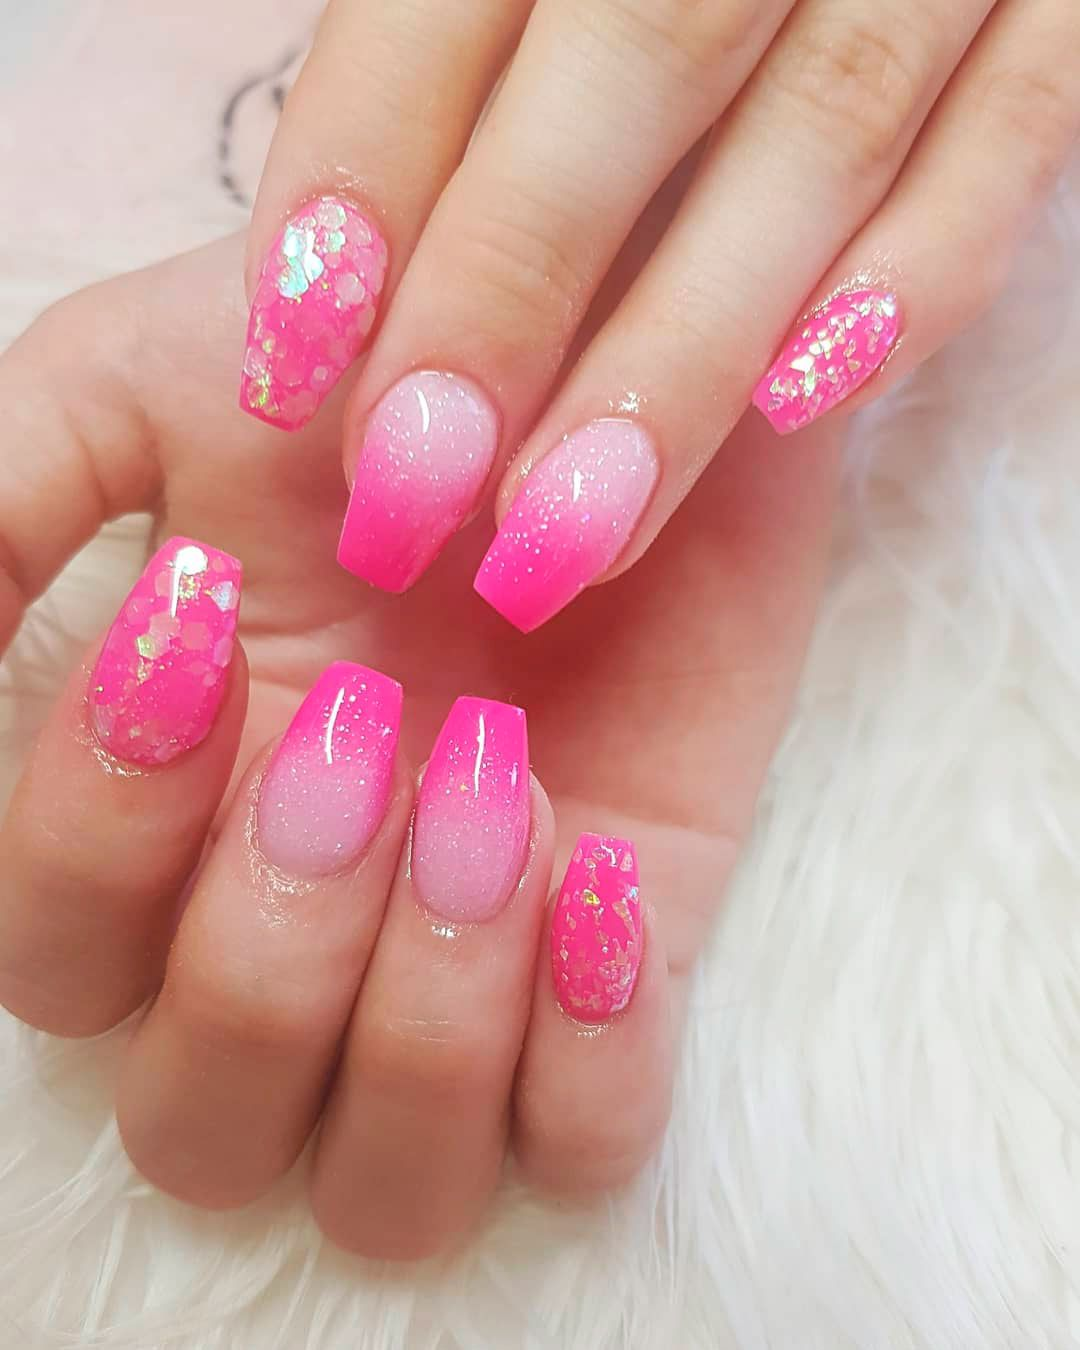 Best Summer Ombre Nails In 2019 Stylish Belles Pink Ombre Nails Glitter Pink Ombre Nails Ombre Nails